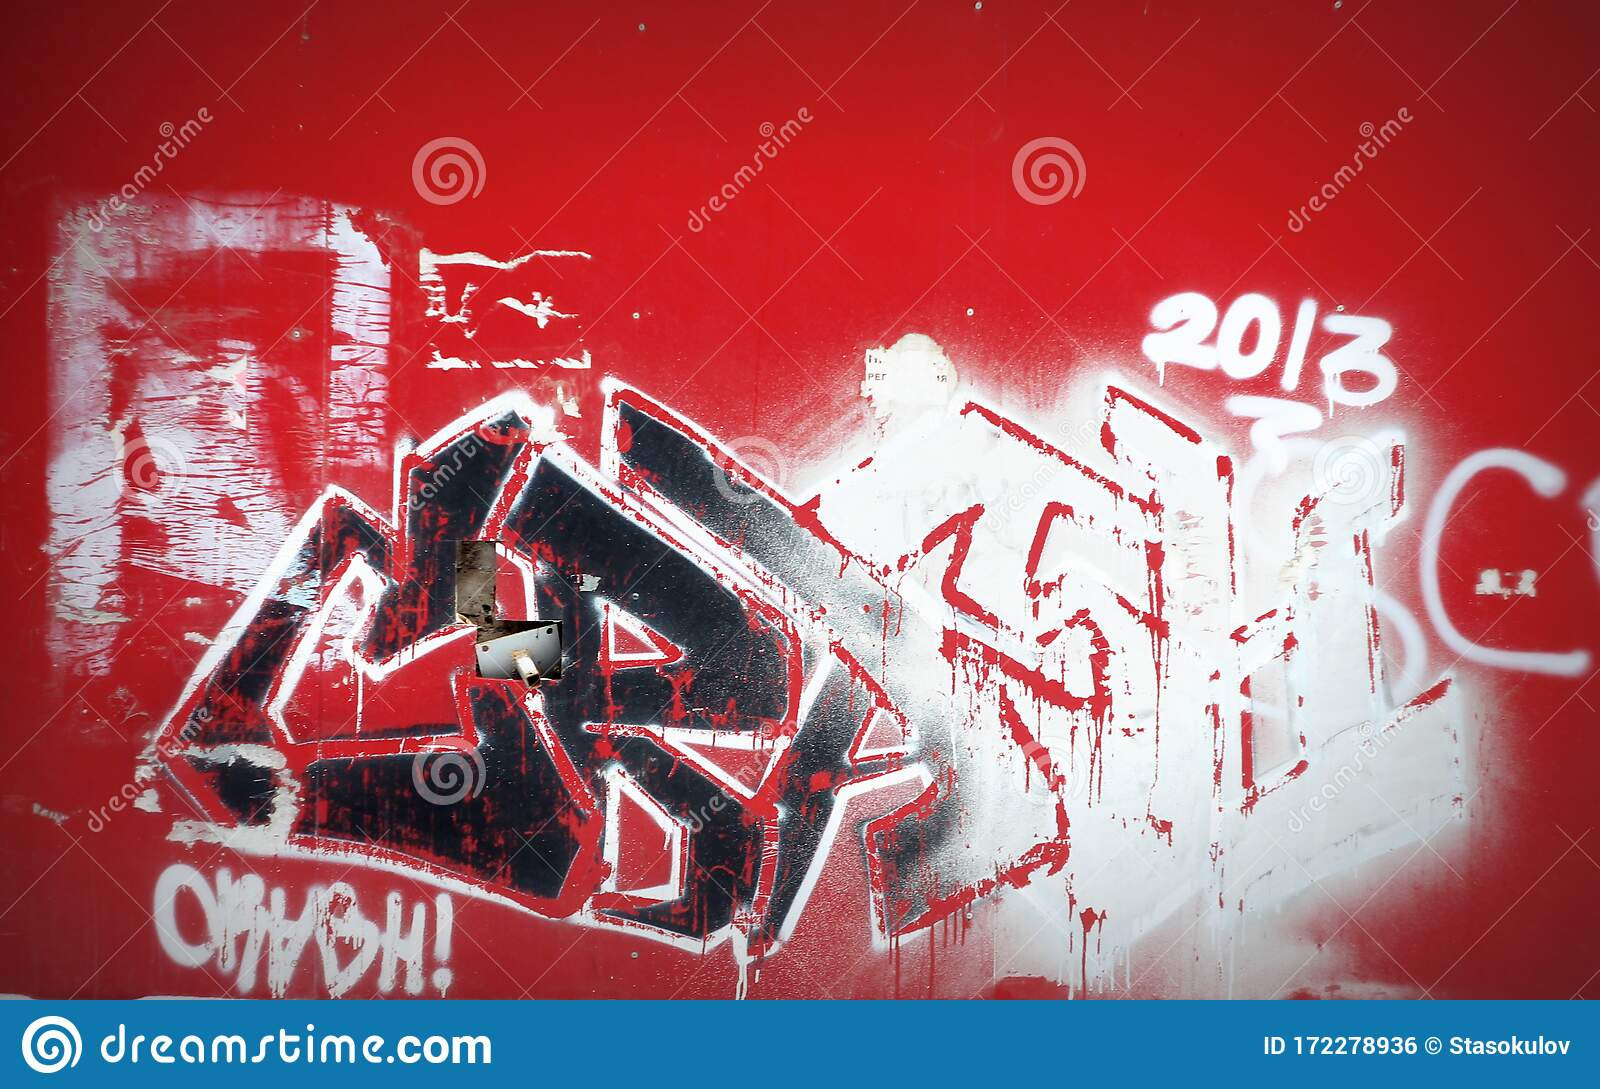 Red Wall With Graffiti Black And White Color Street Art Stock